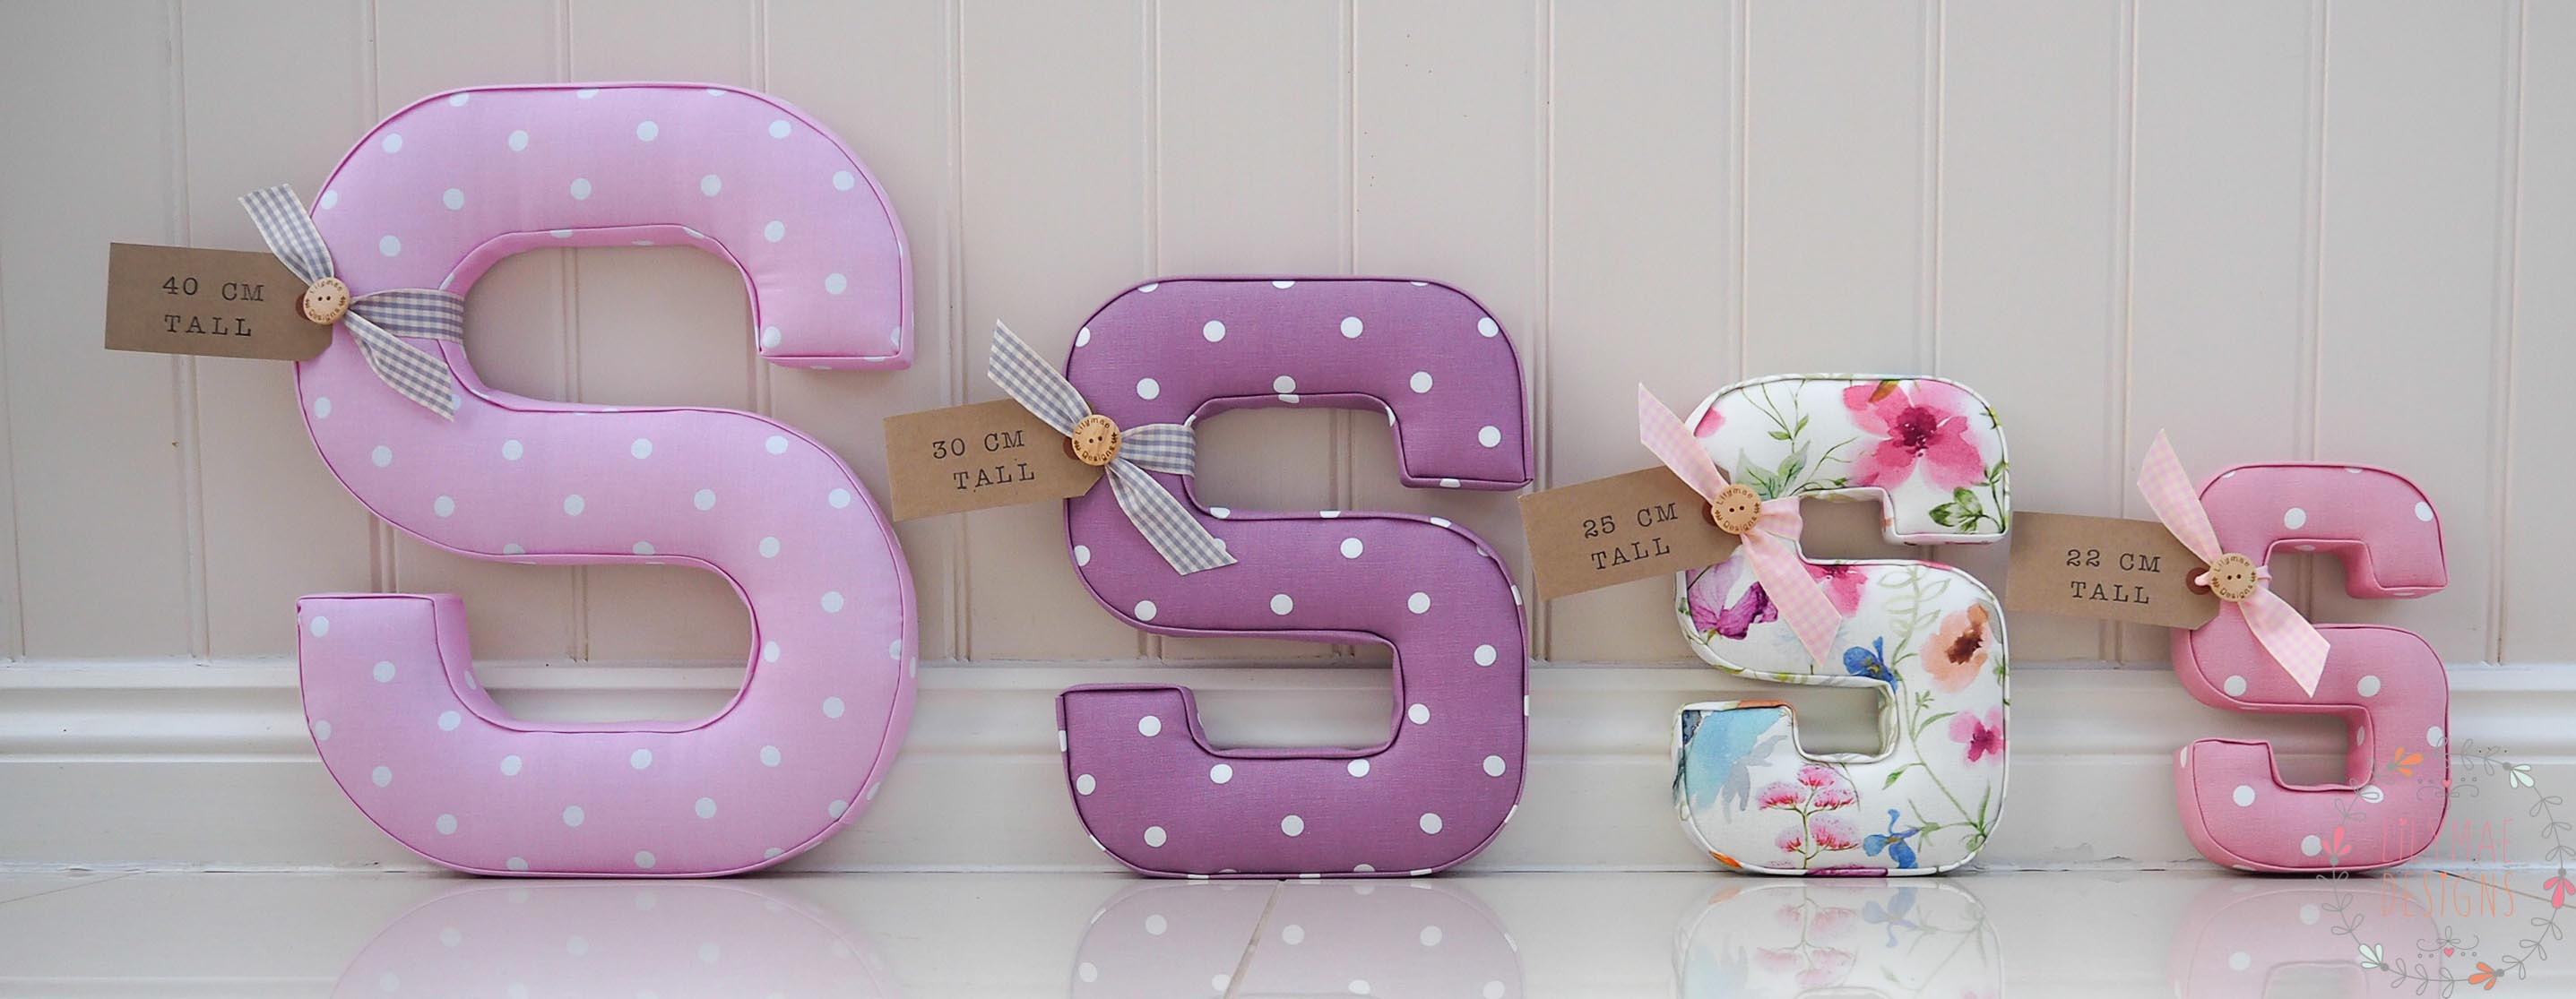 different size fabric letters, 40cm tall, 30cm tall, 25cm tall 22cm tall custom size letters available on request